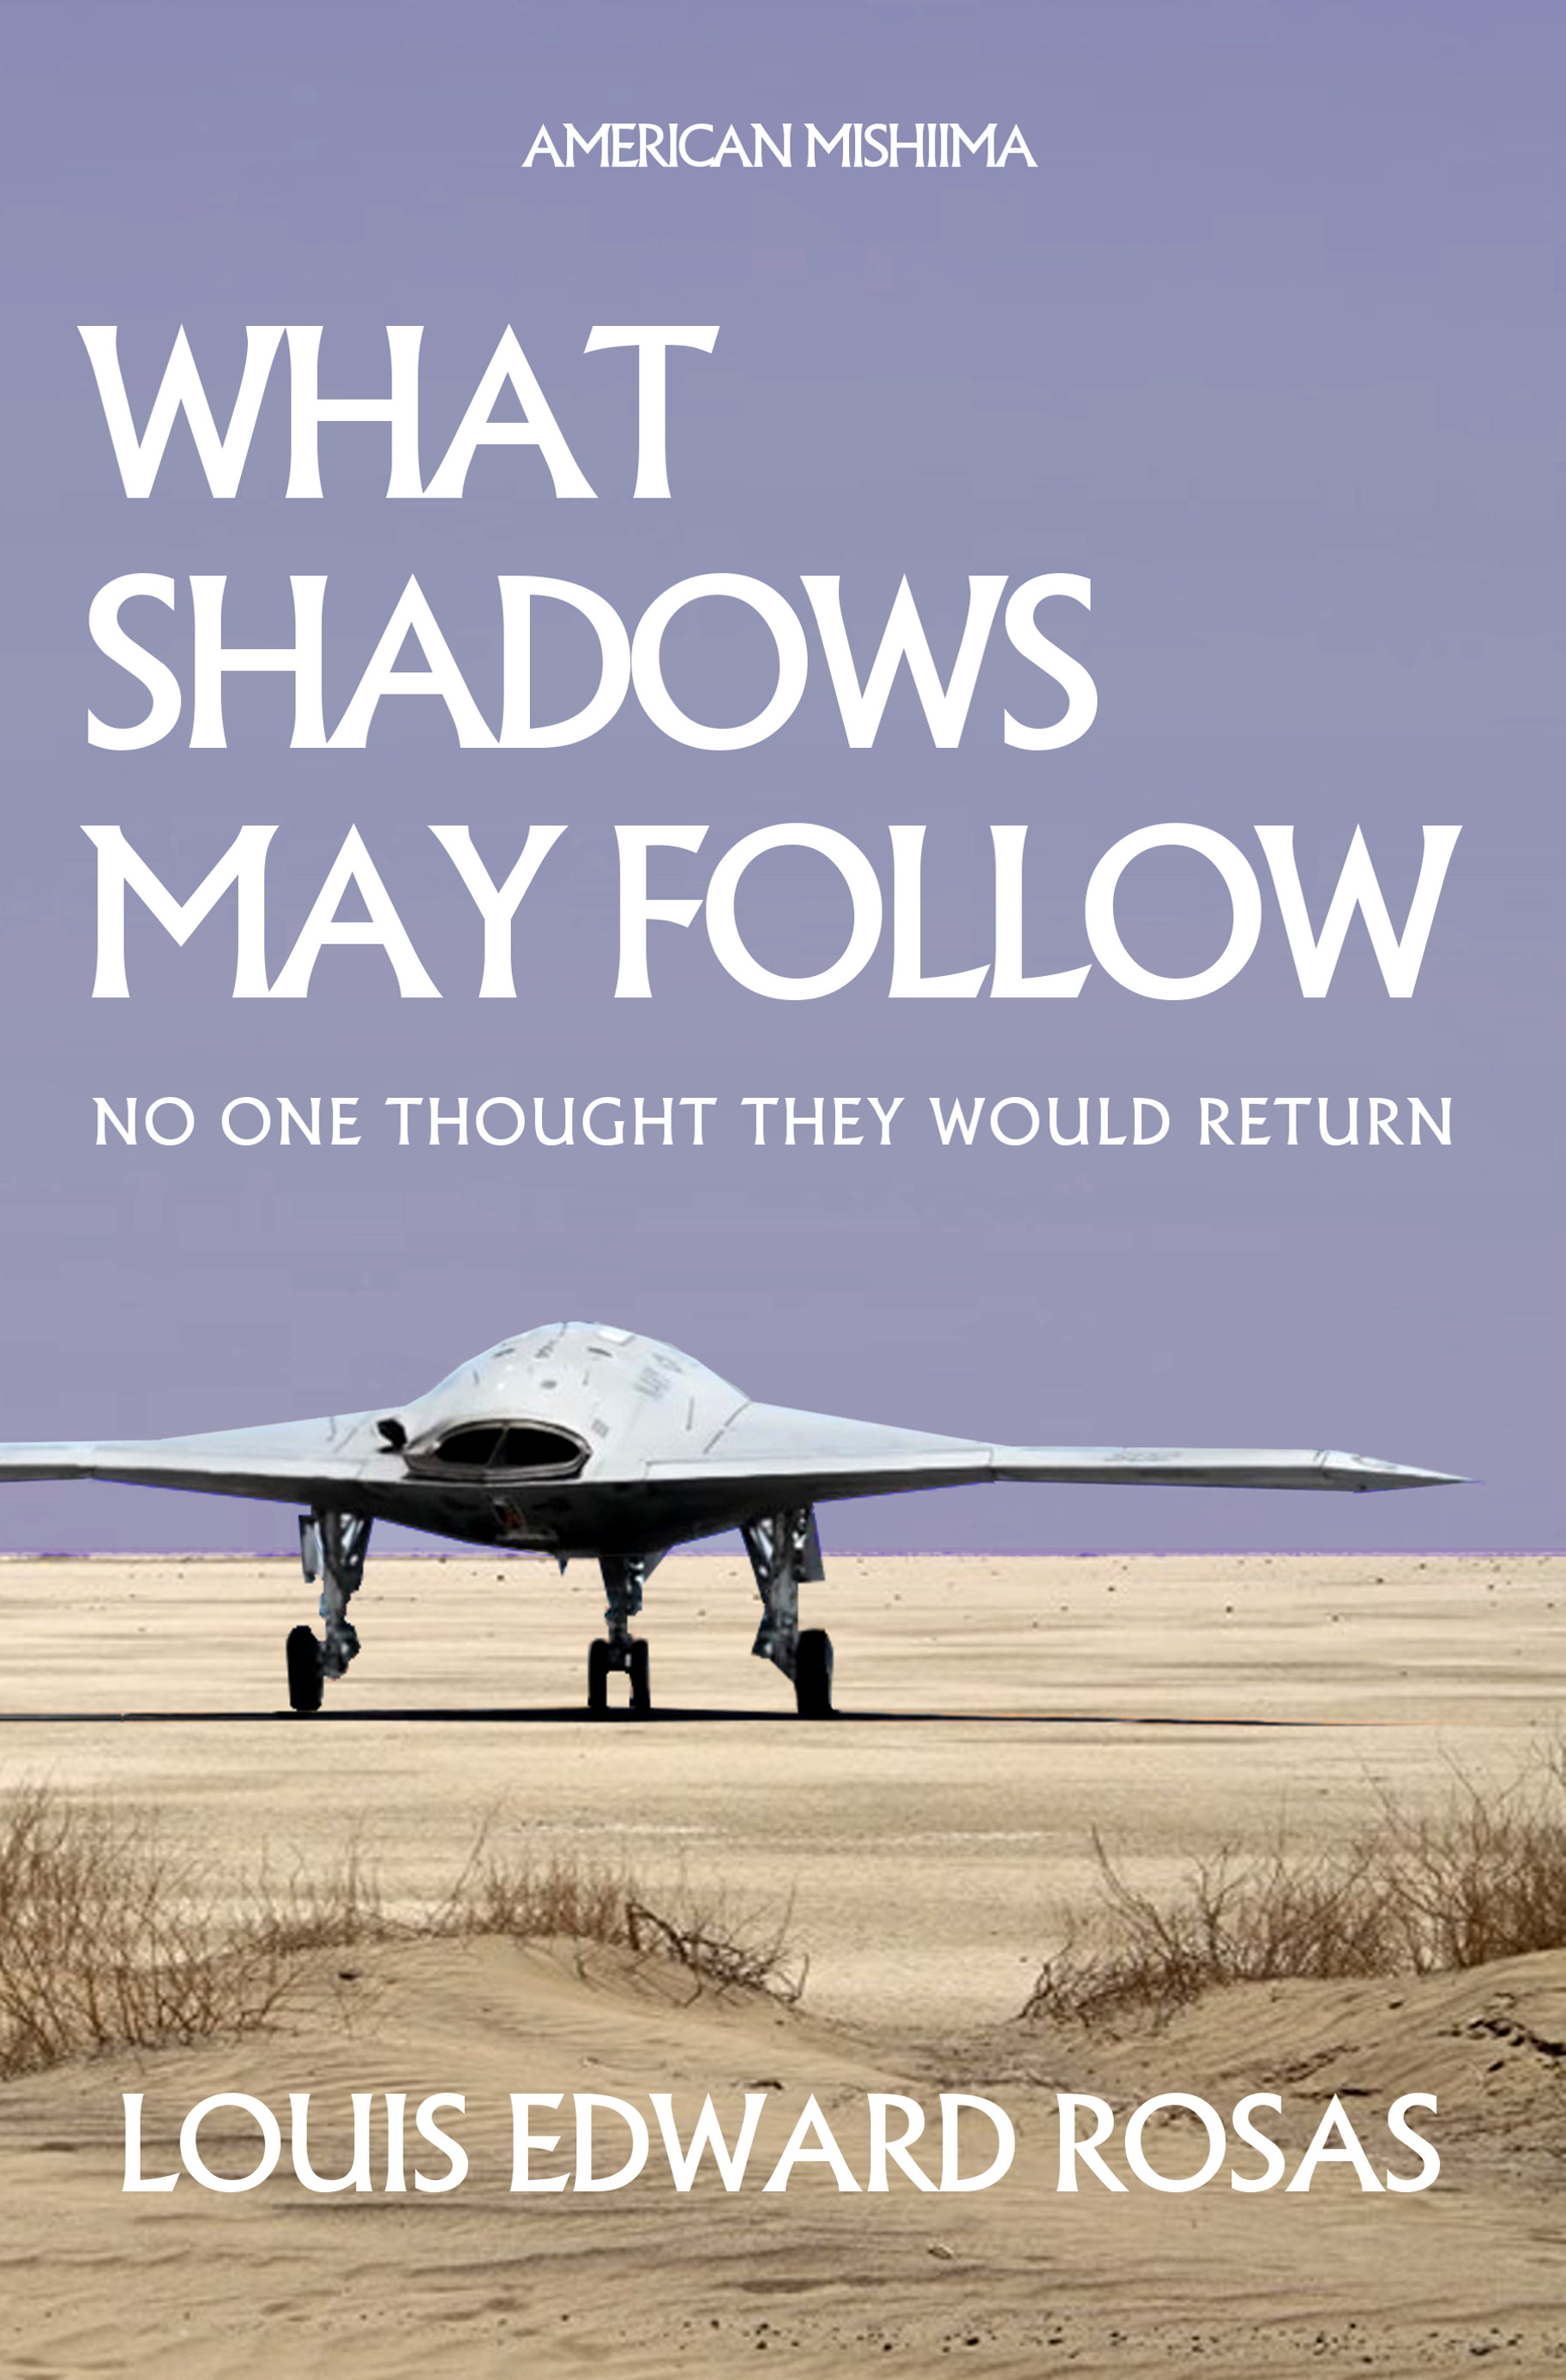 What shadows may follow